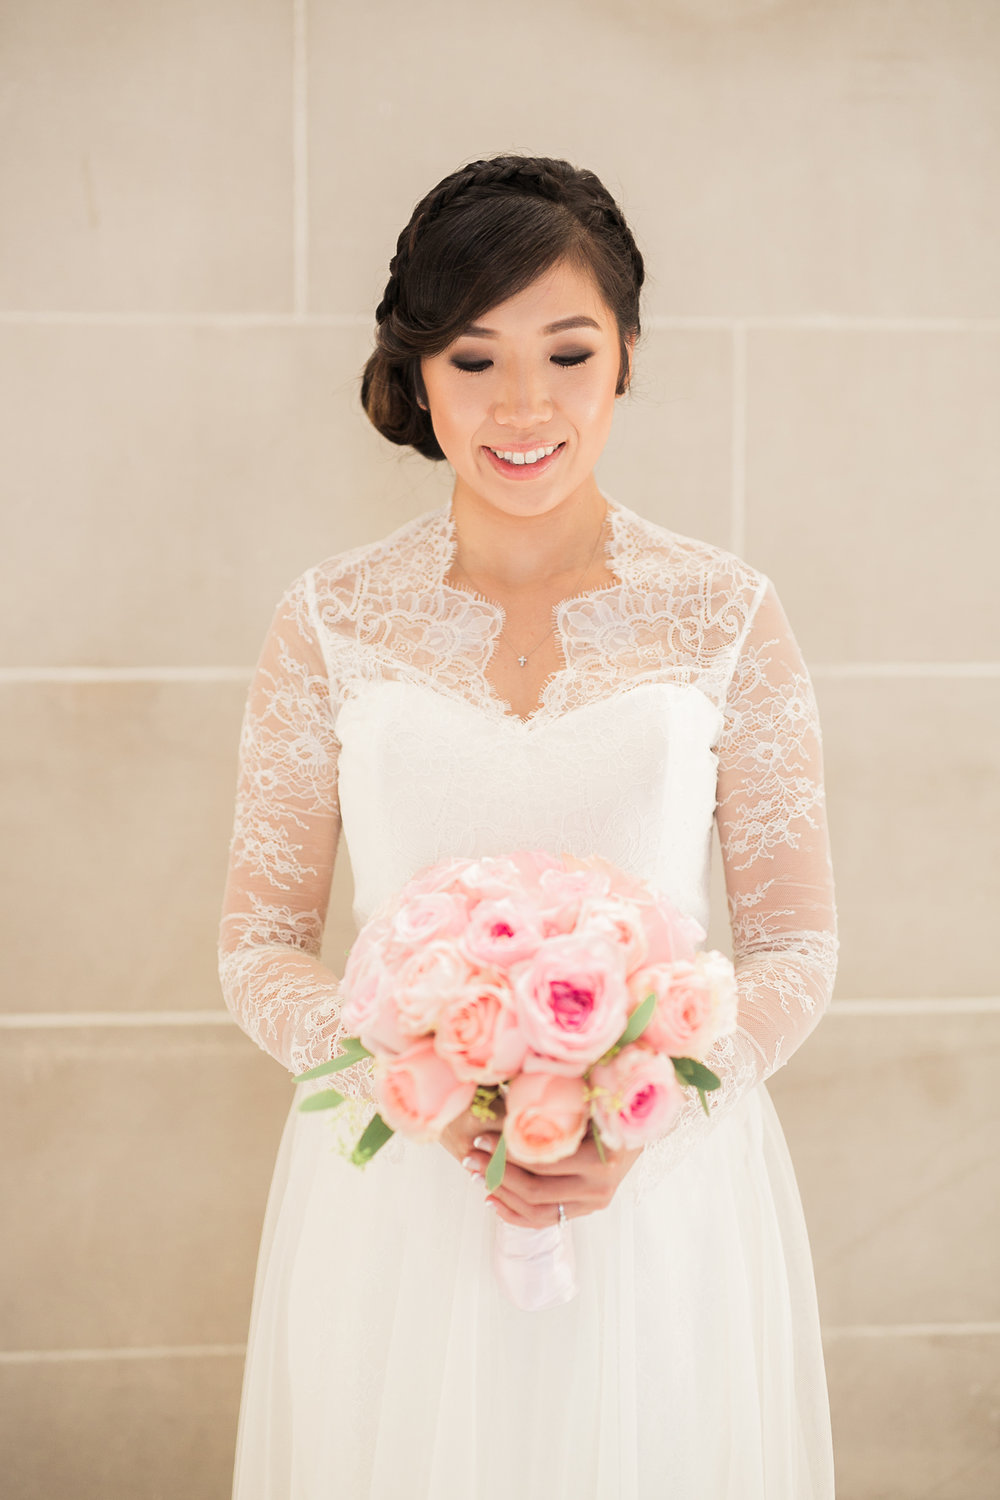 long-sleeve-lace-wedding-dress-1.jpg